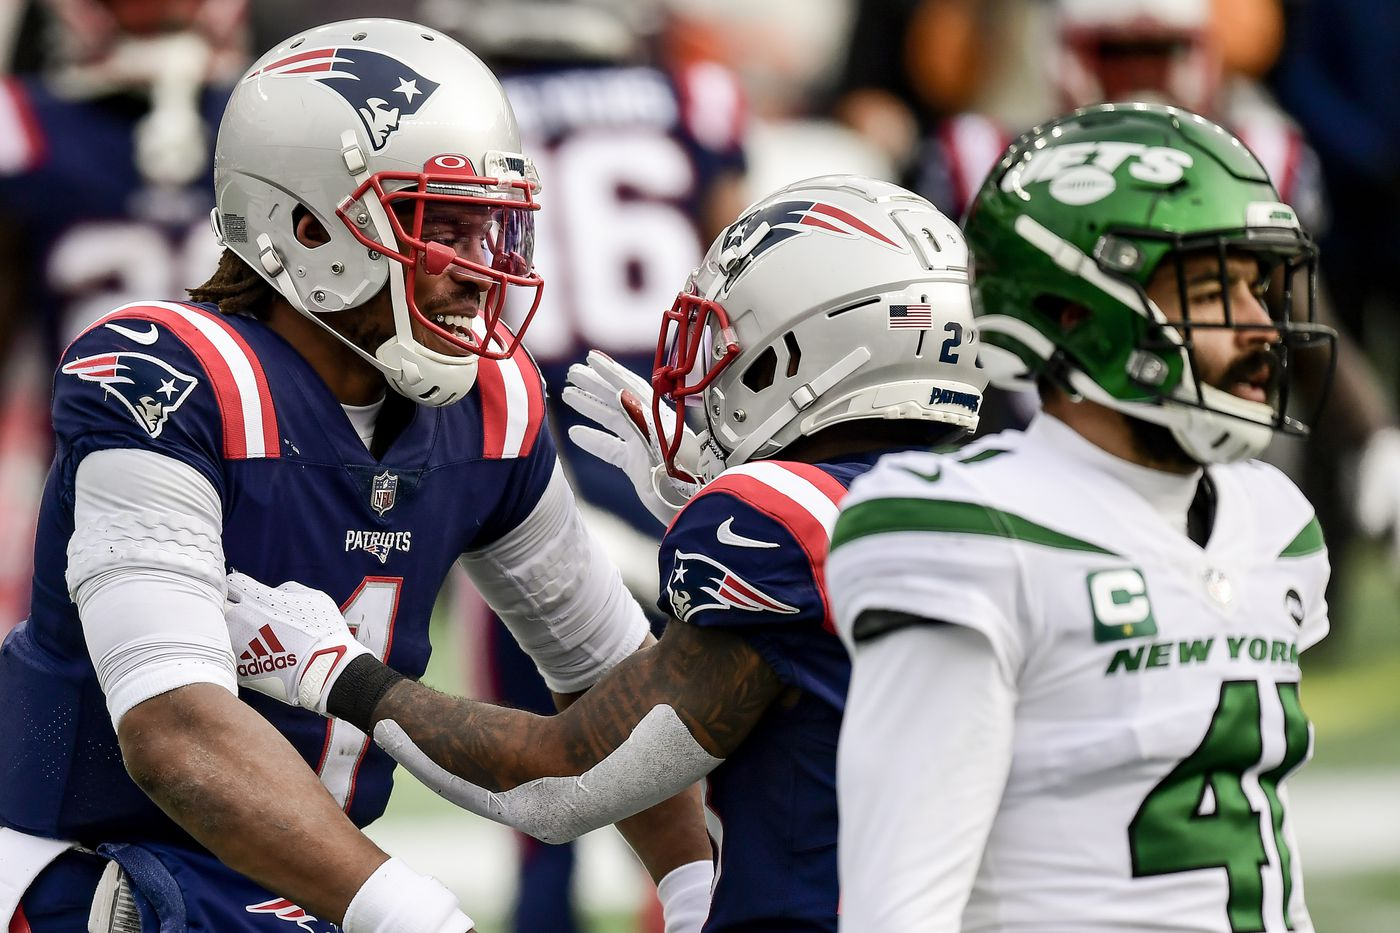 NFL Week 17: Instant analysis from Patriots' 28-14 win over Jets - Pats  Pulpit